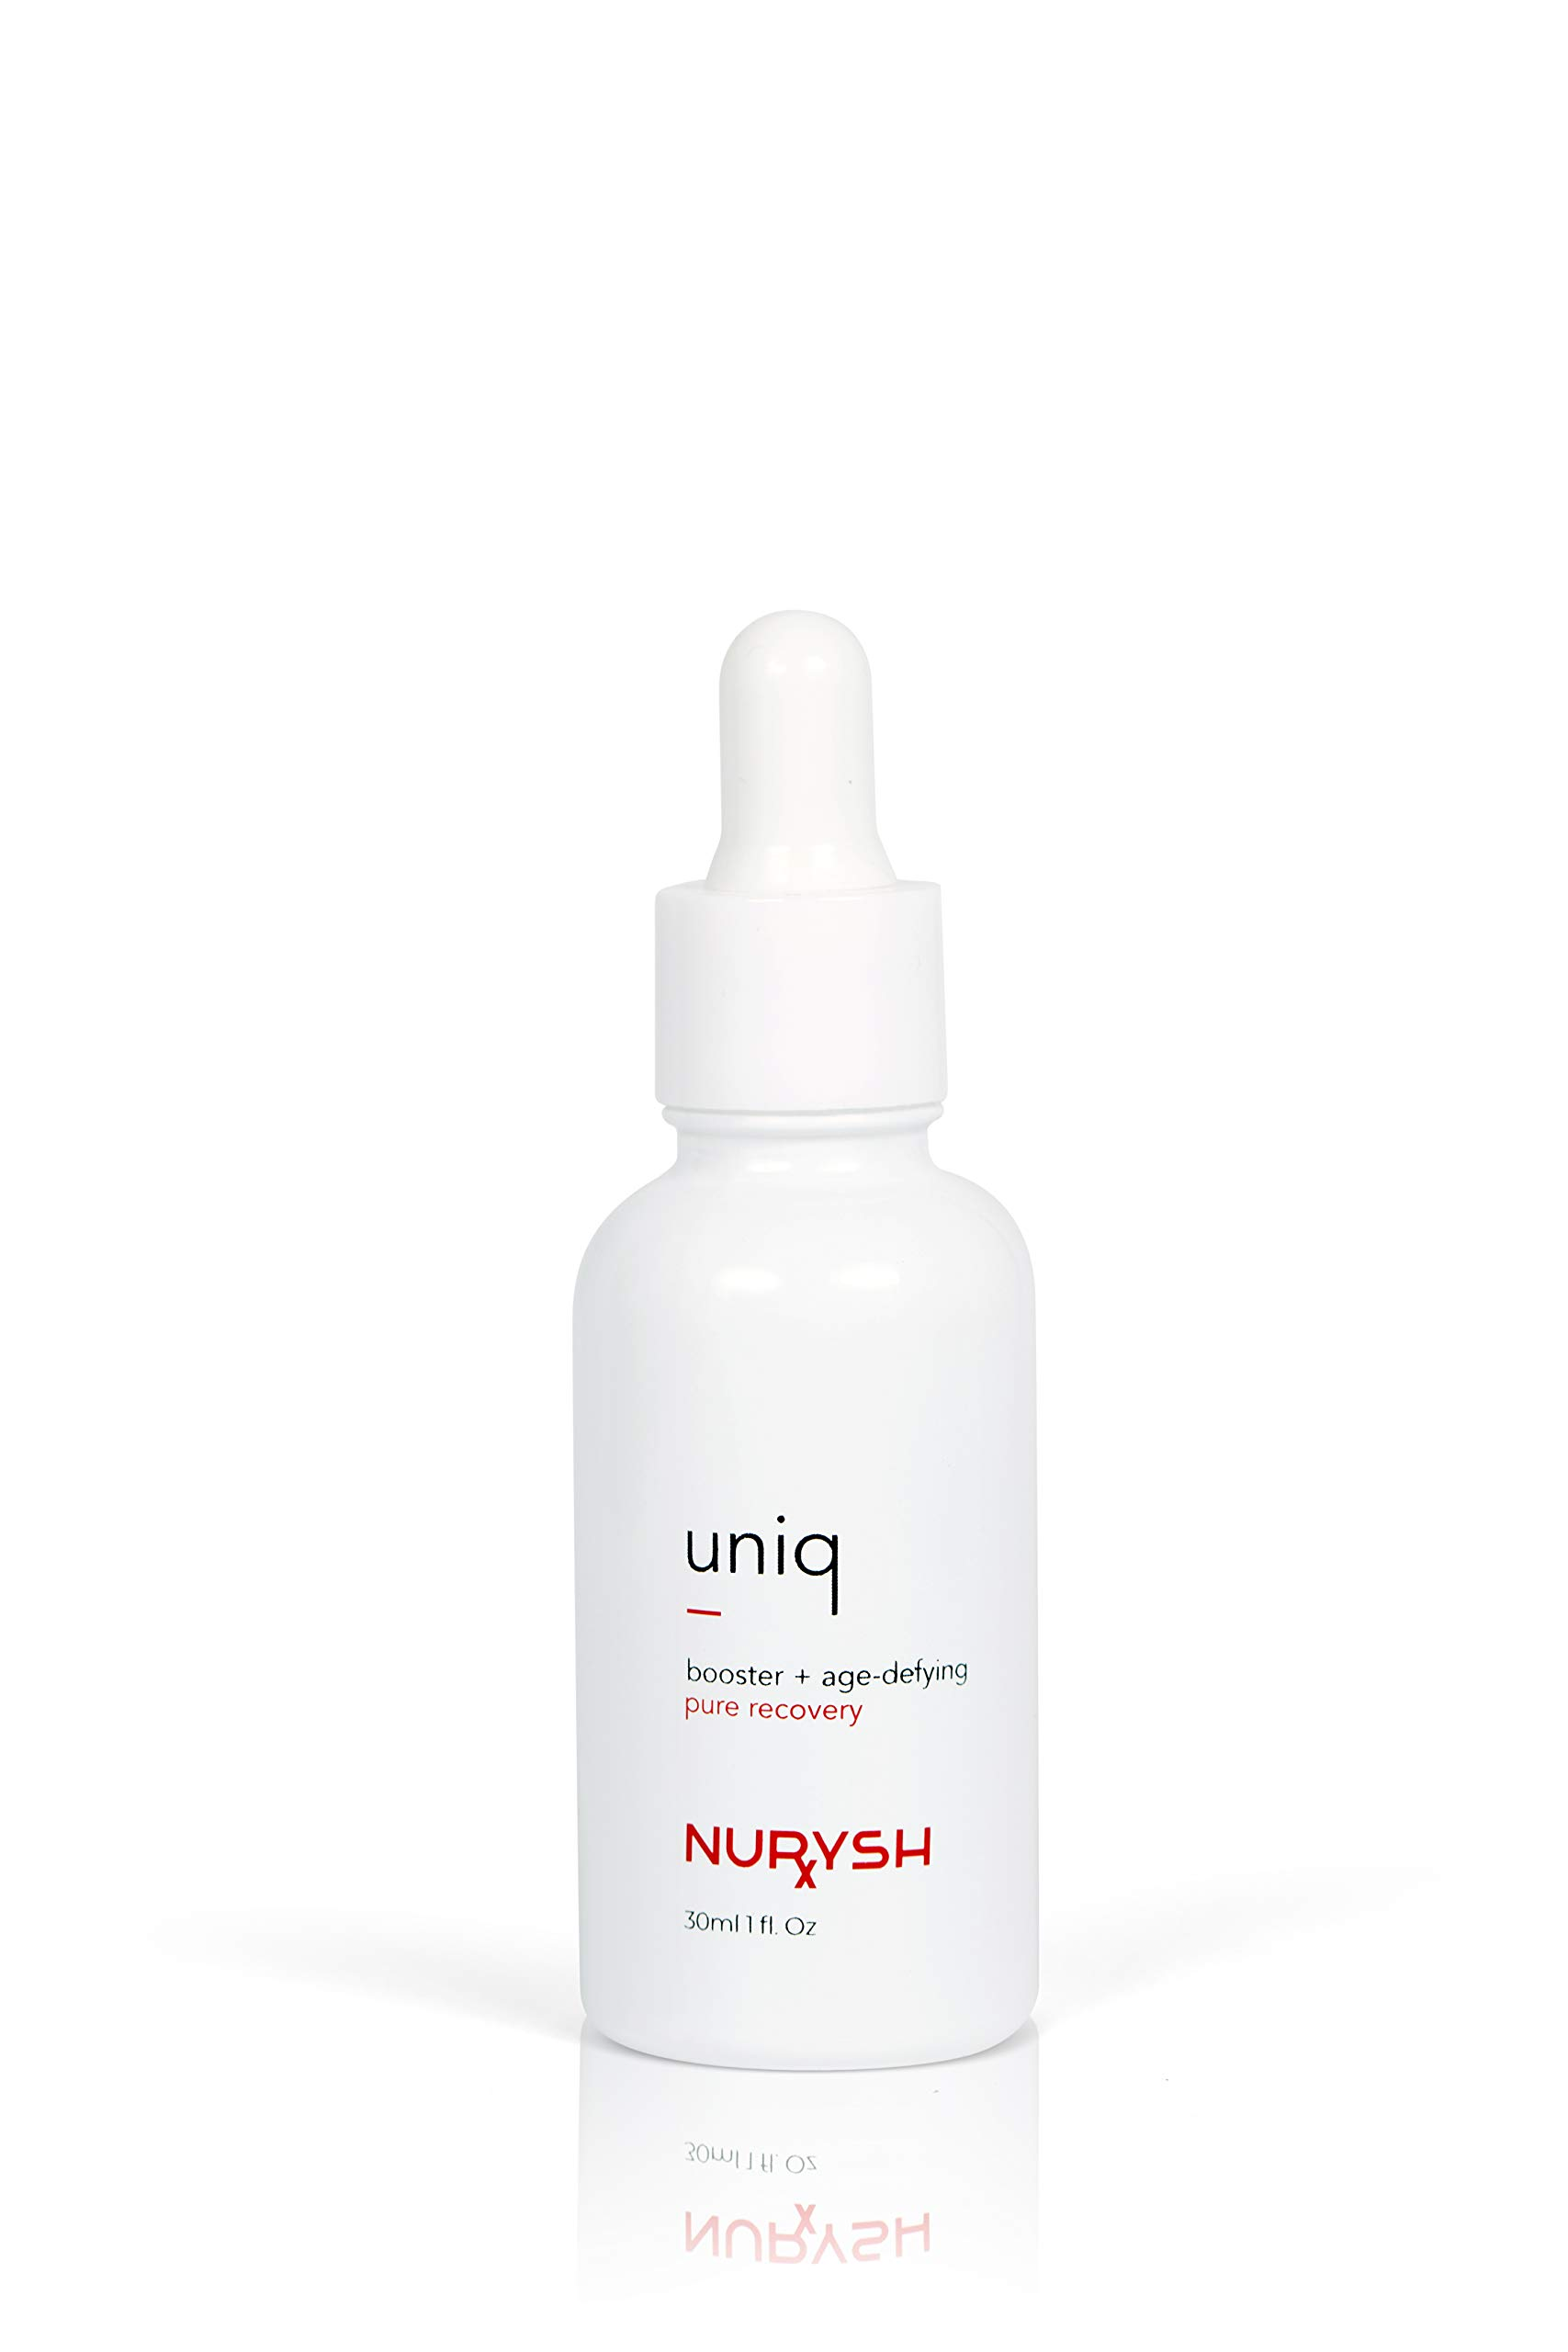 UNIQ Pure Recovery by Nurysh, Skin Booster & Age Defying Serum, Contains Vitamin C, Hyaluronic Acid, Retinol and Niaminicide